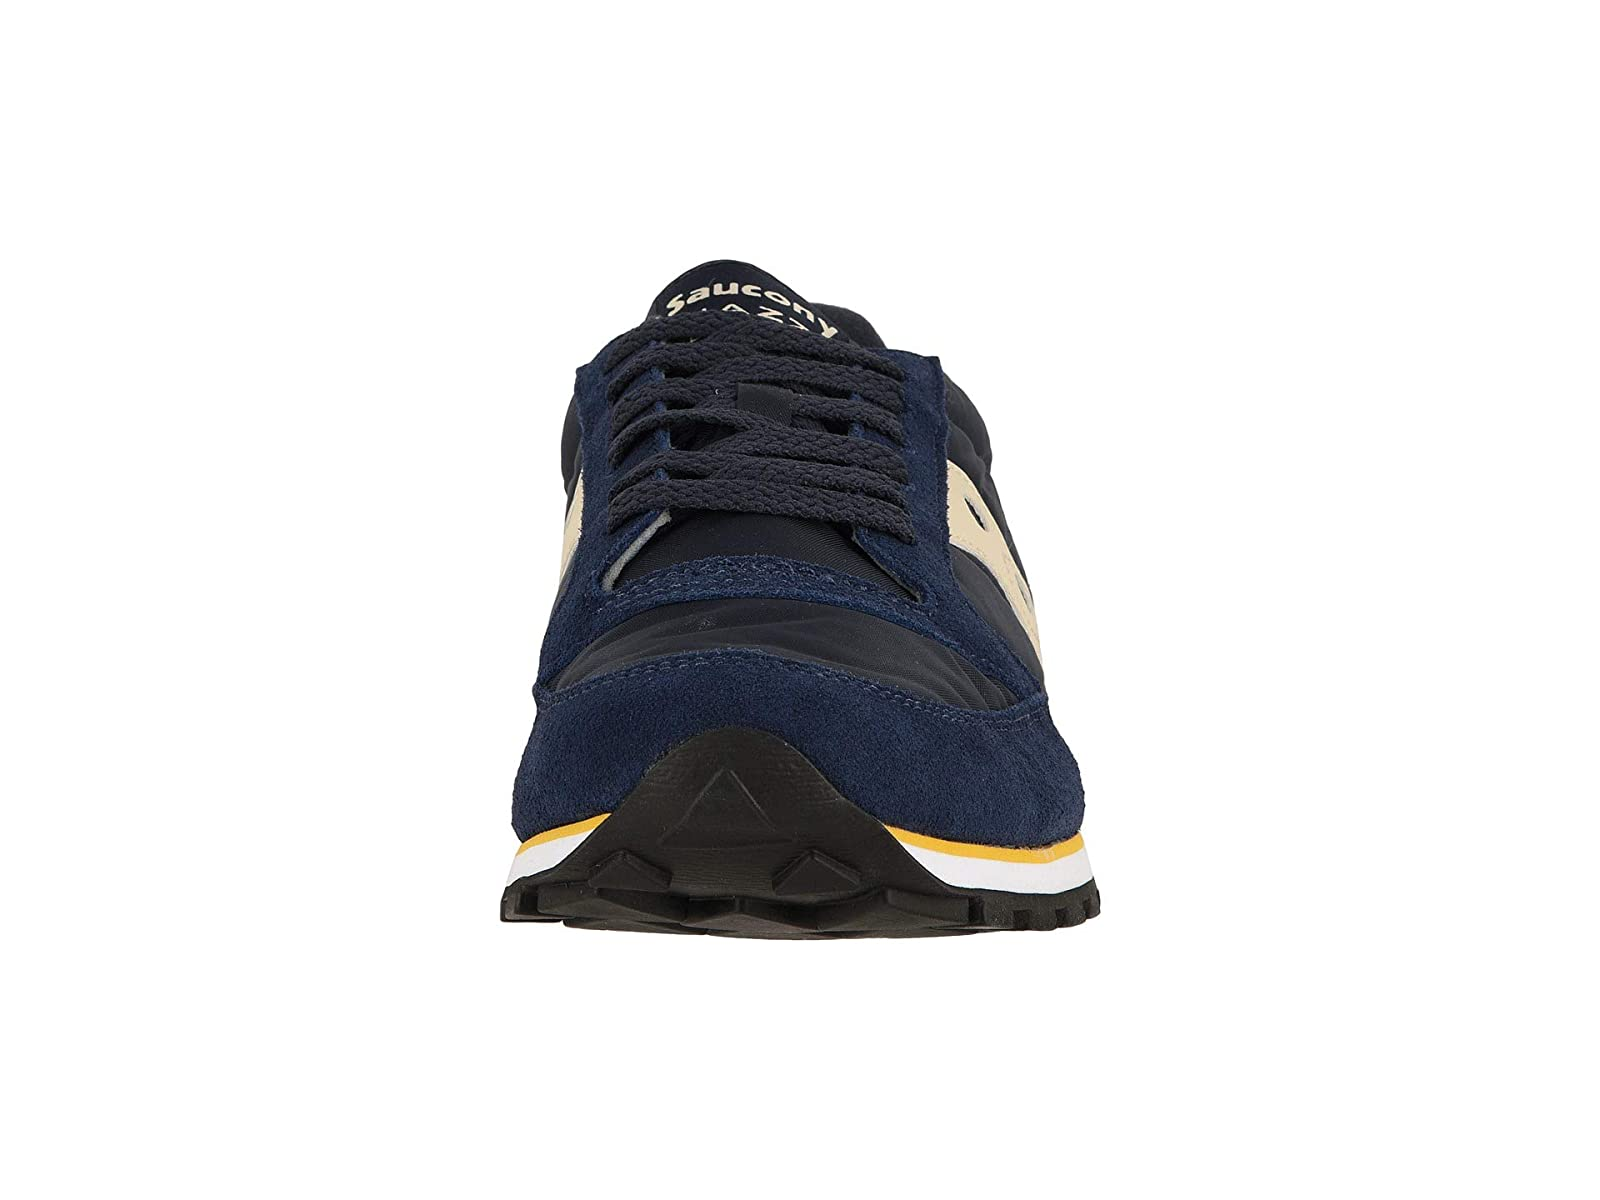 Man-039-s-Sneakers-amp-Athletic-Shoes-Saucony-Originals-Jazz-Low-Pro thumbnail 141